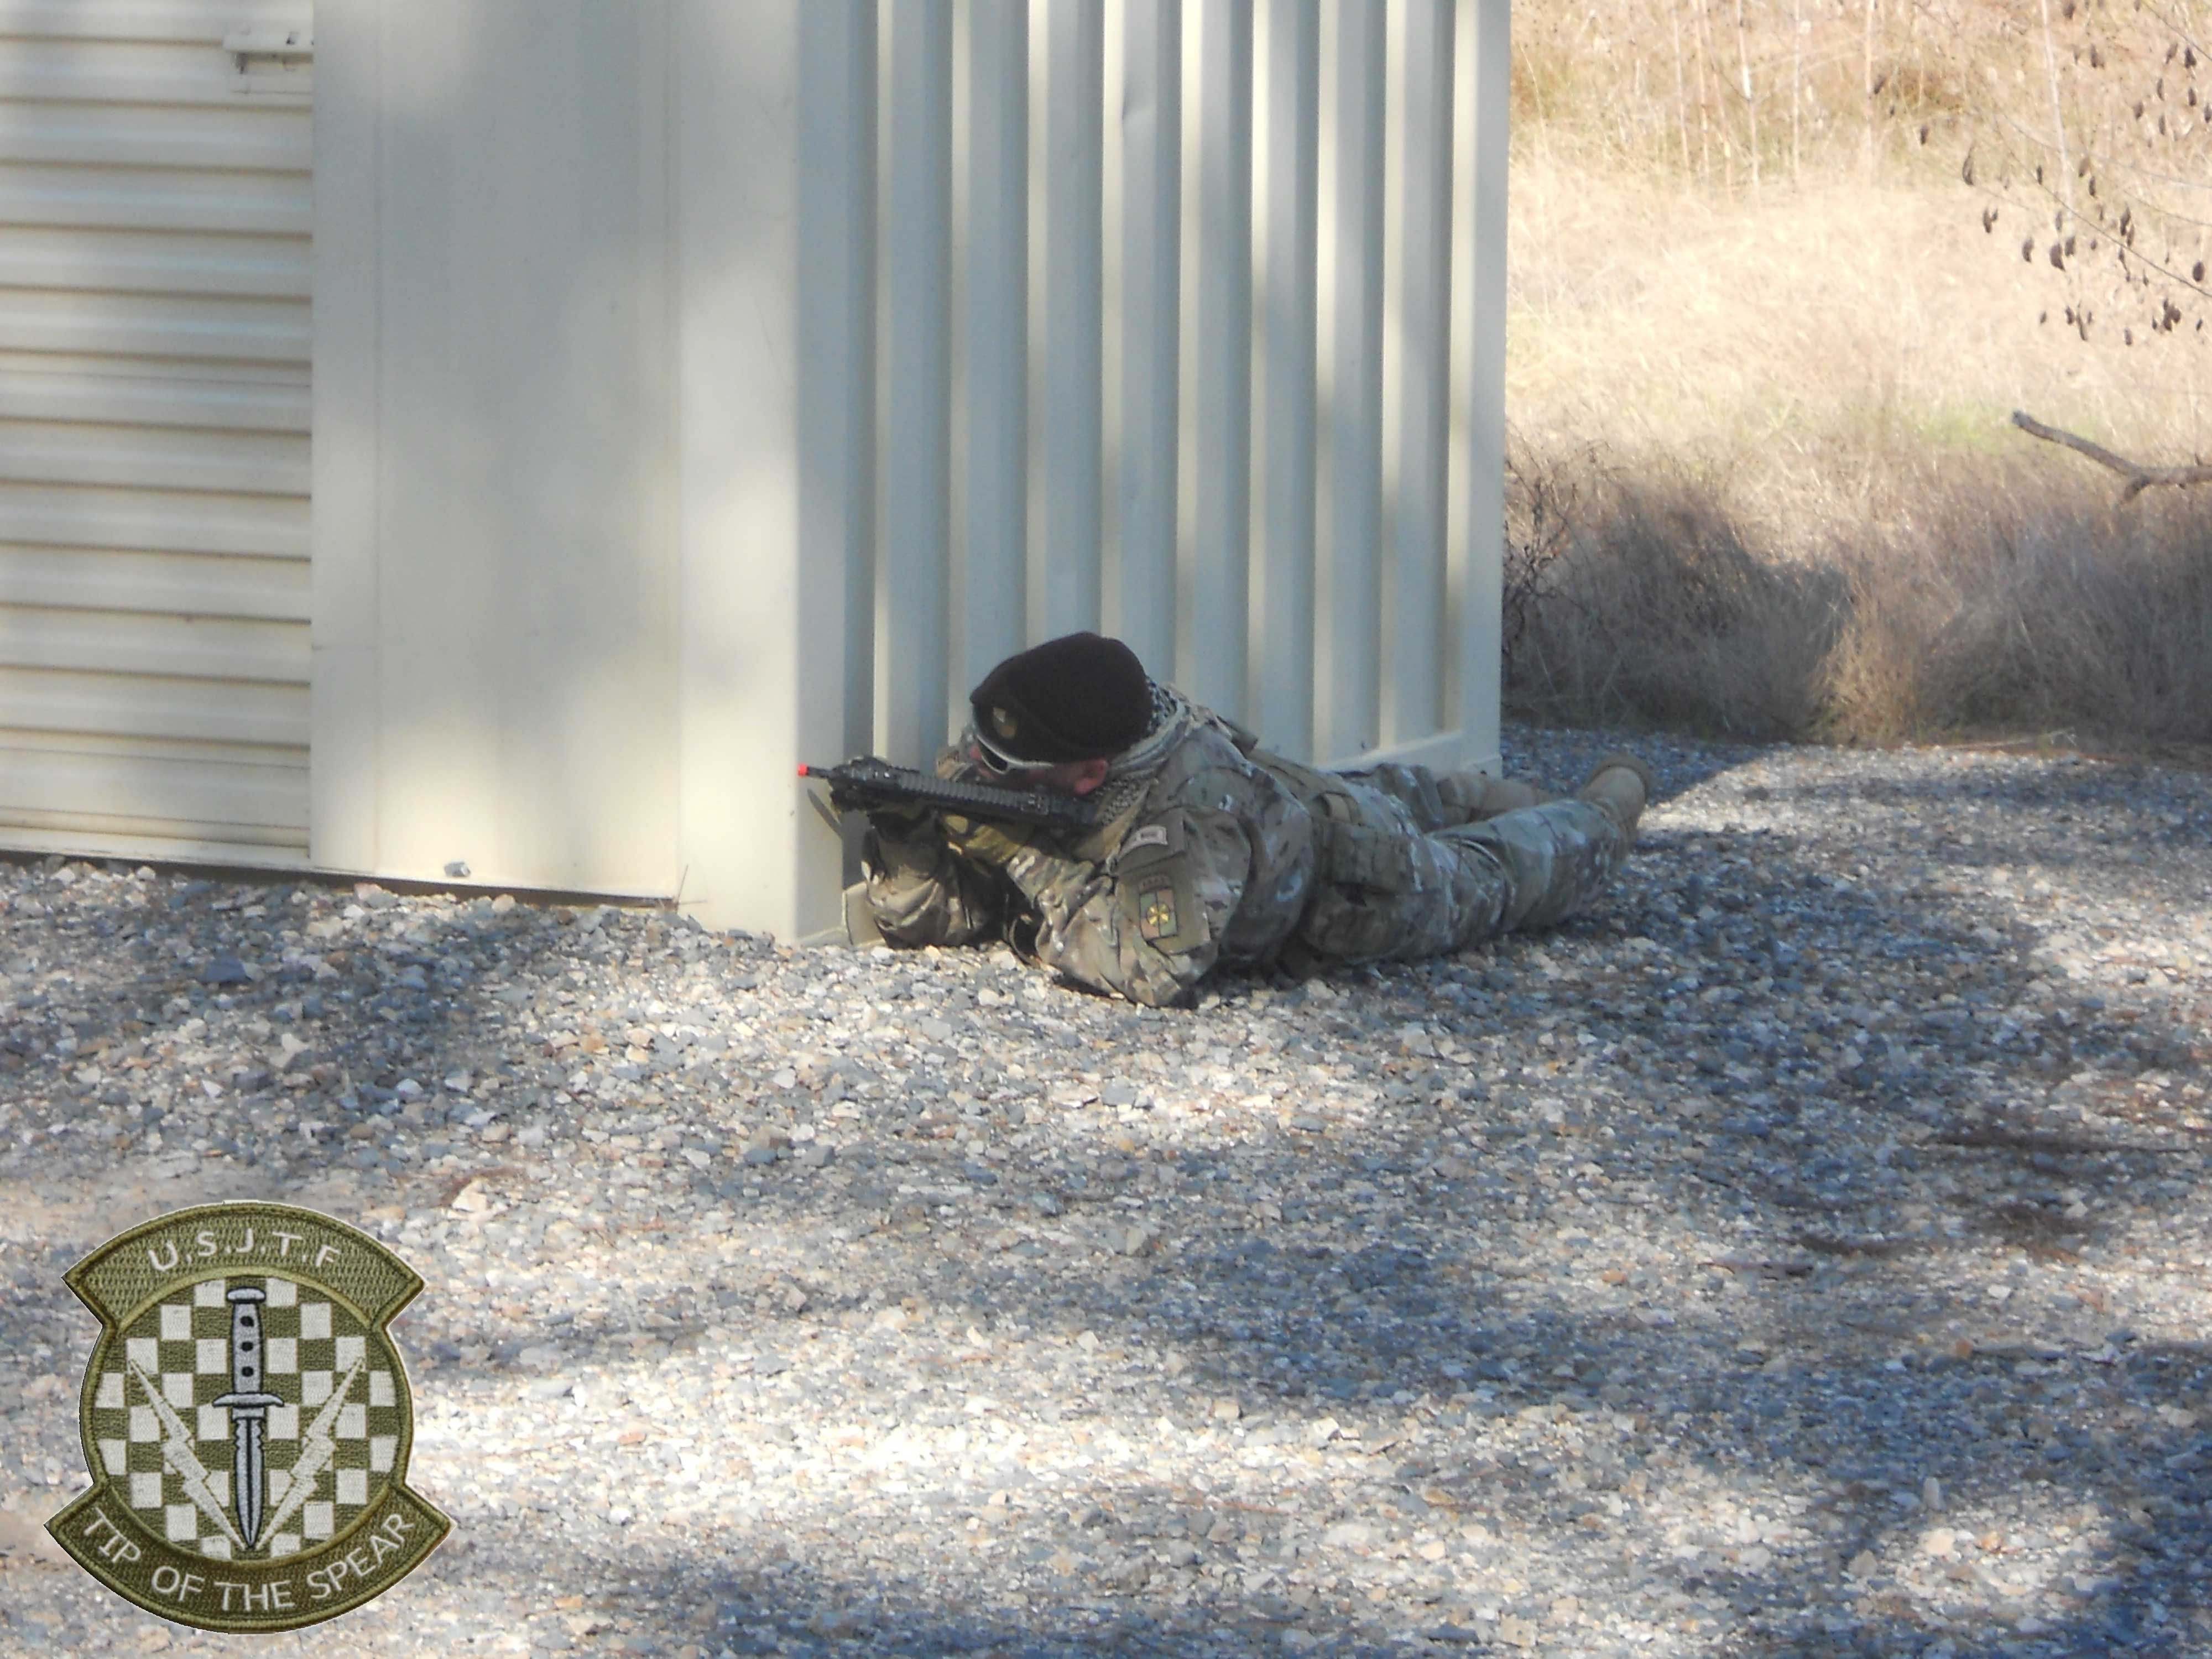 United States Joint Task Force (Airsoft)